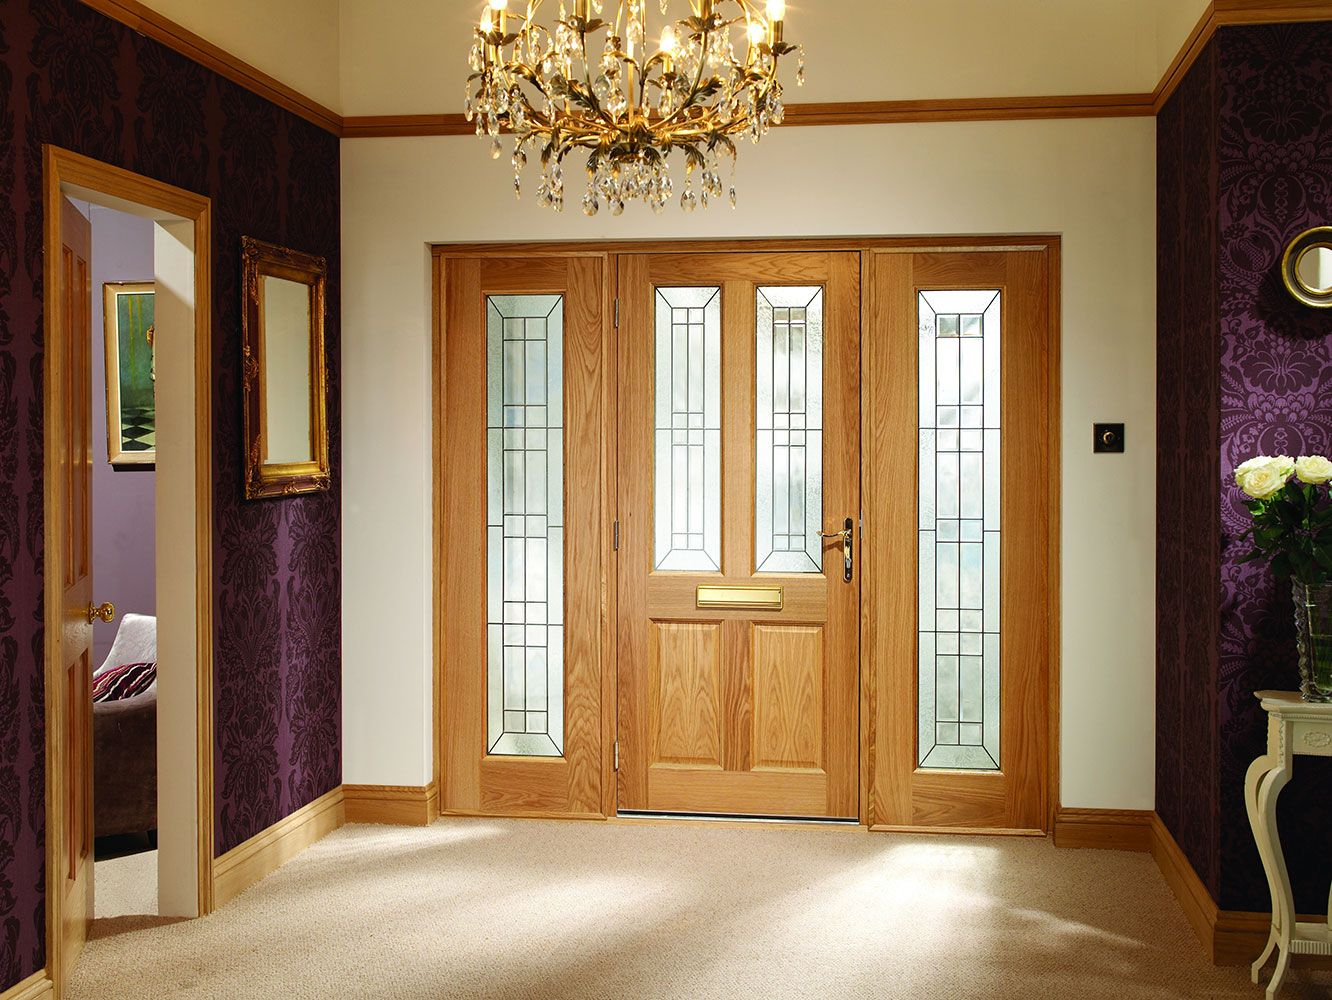 Best 20 External hardwood doors ideas on Pinterest External